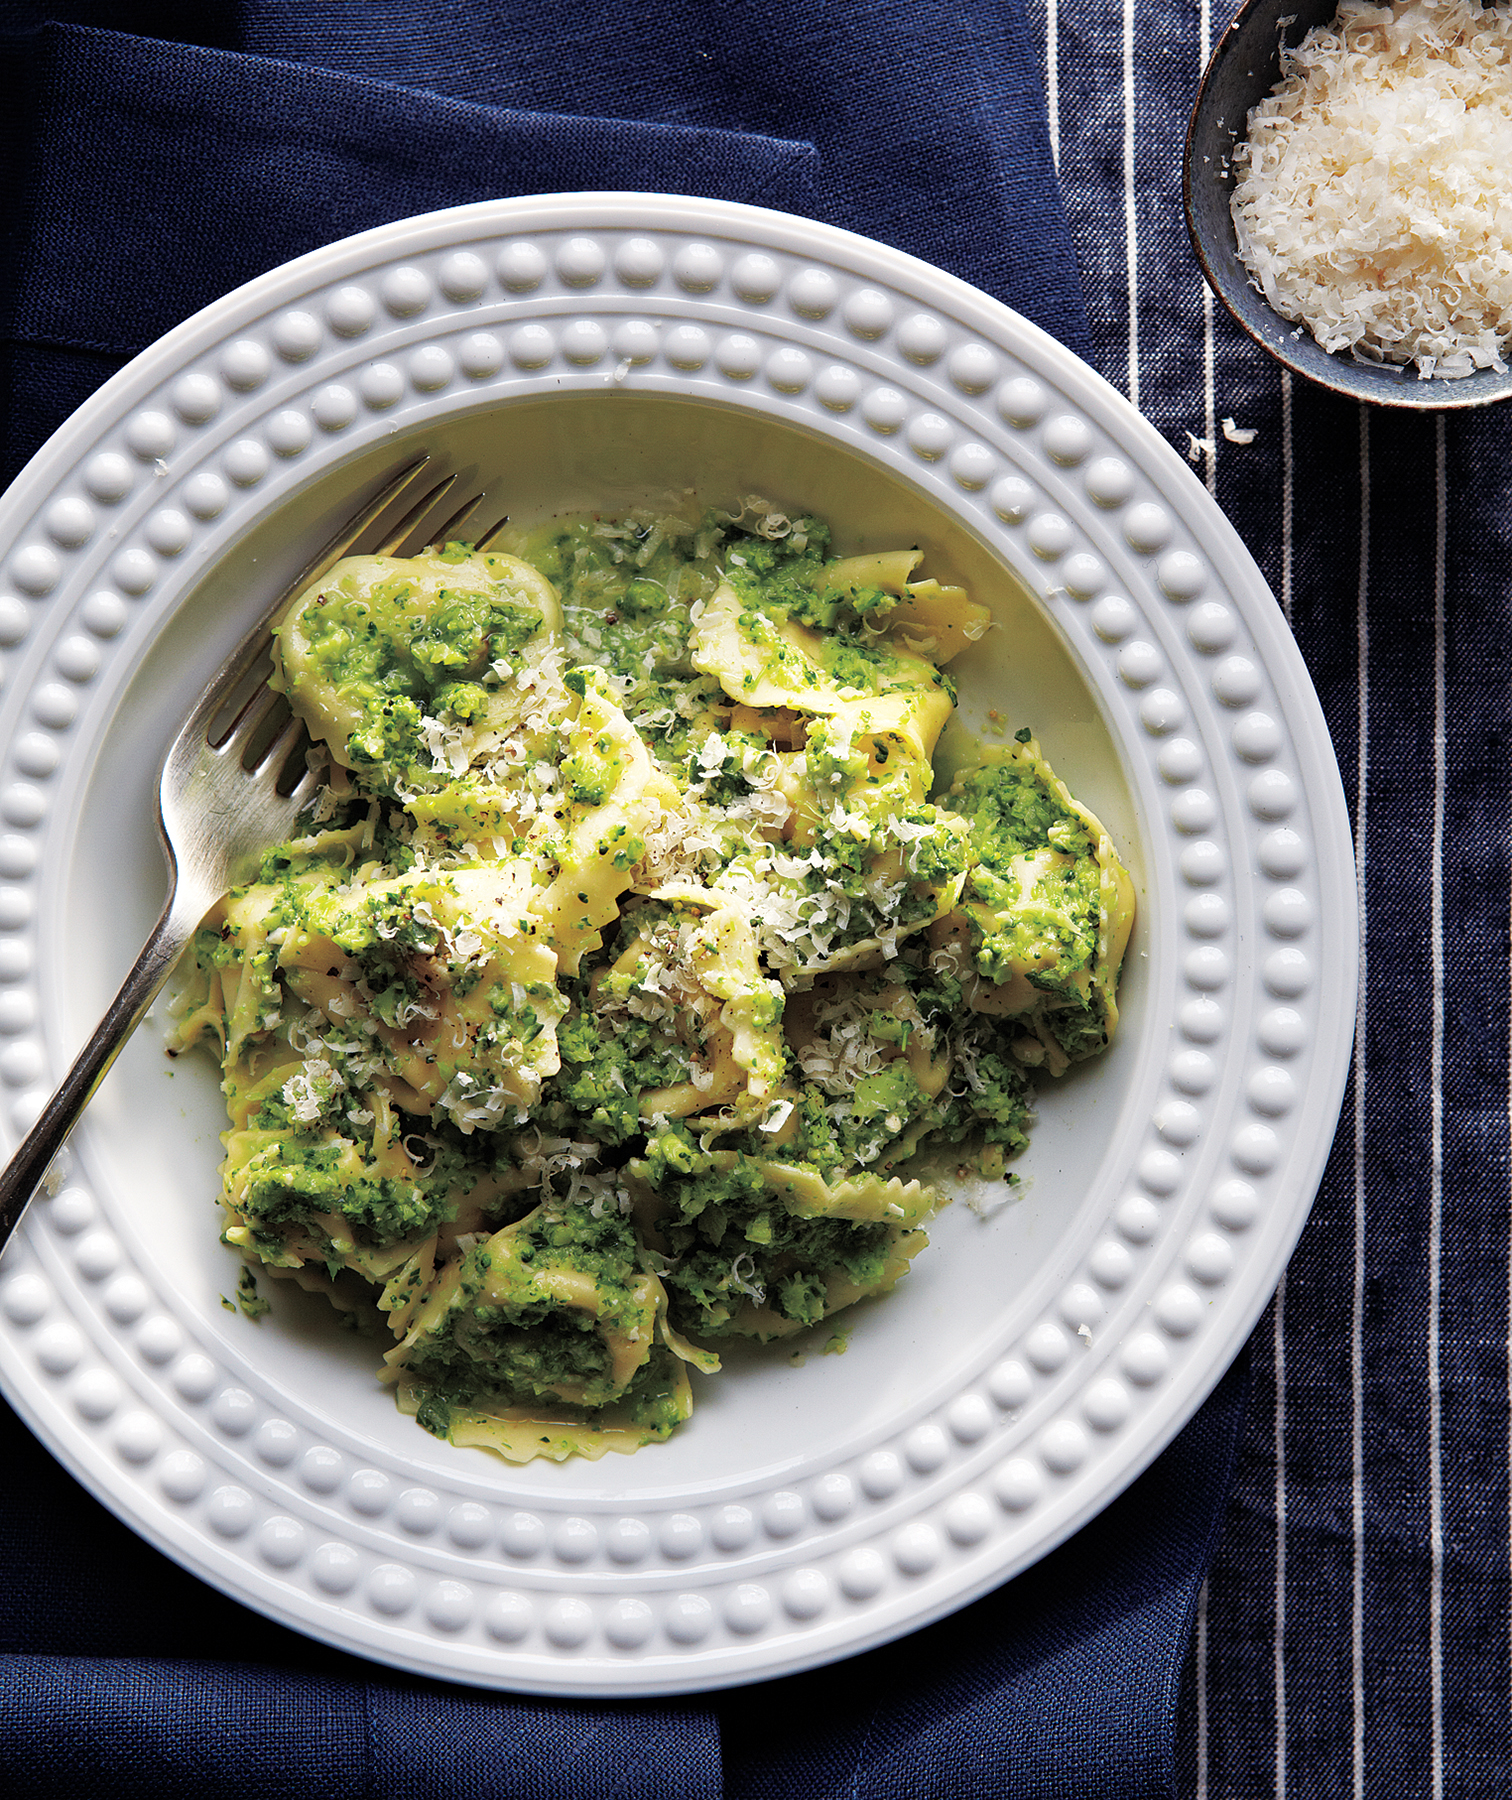 10 Ways to Make Pesto You Didn't Know Existed